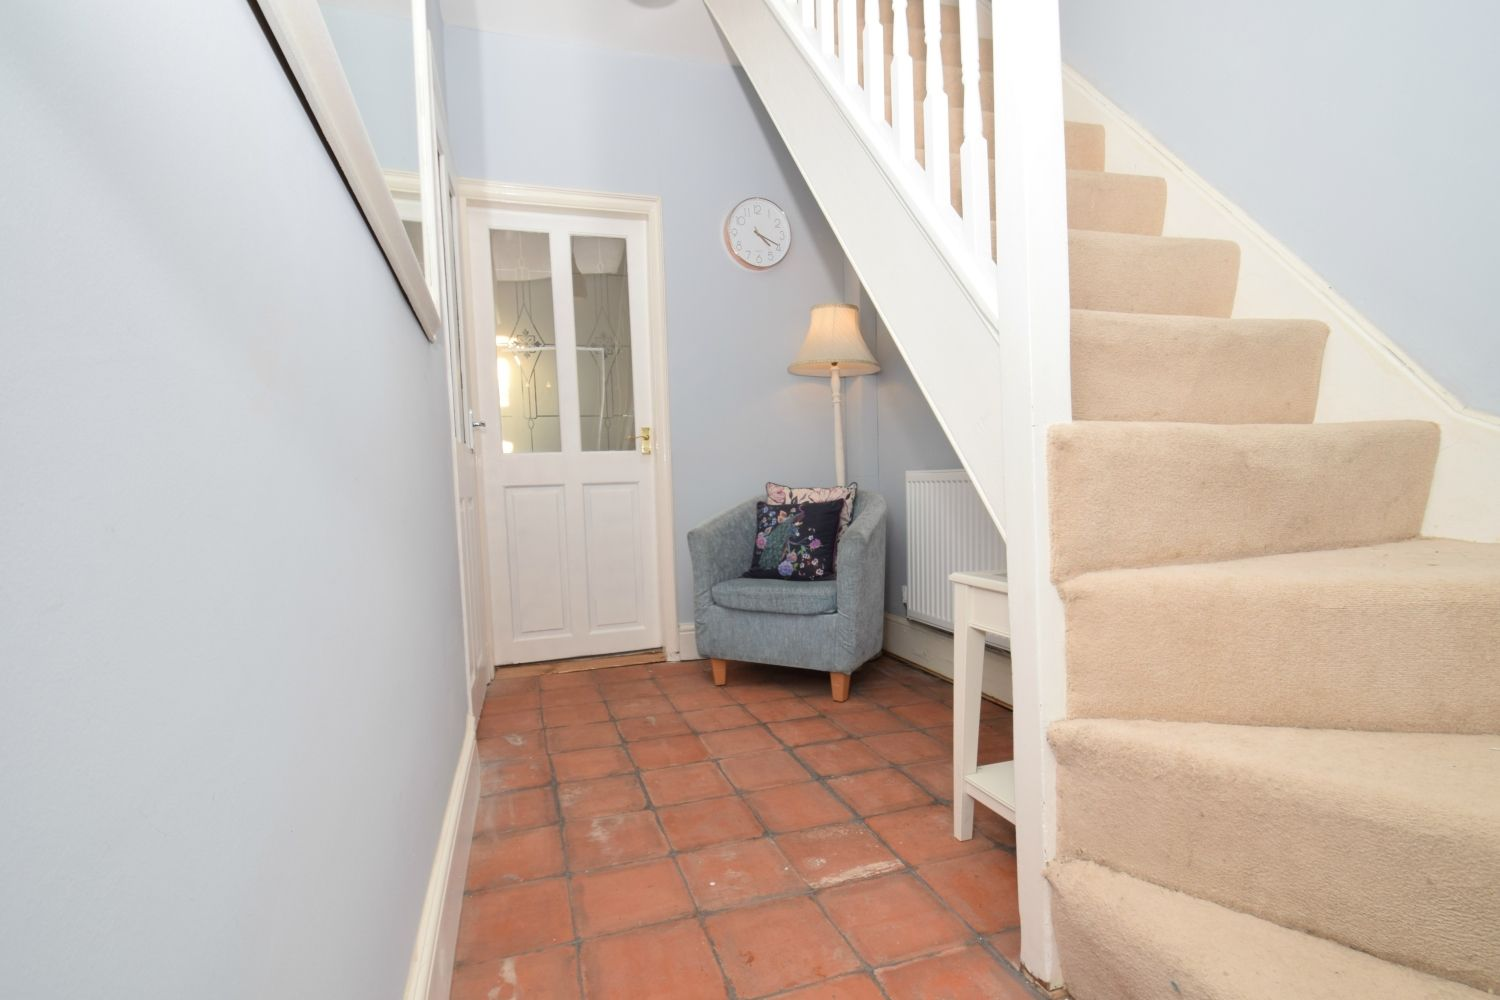 4 bed semi-detached for sale in Upland Grove, Bromsgrove, B61  - Property Image 7